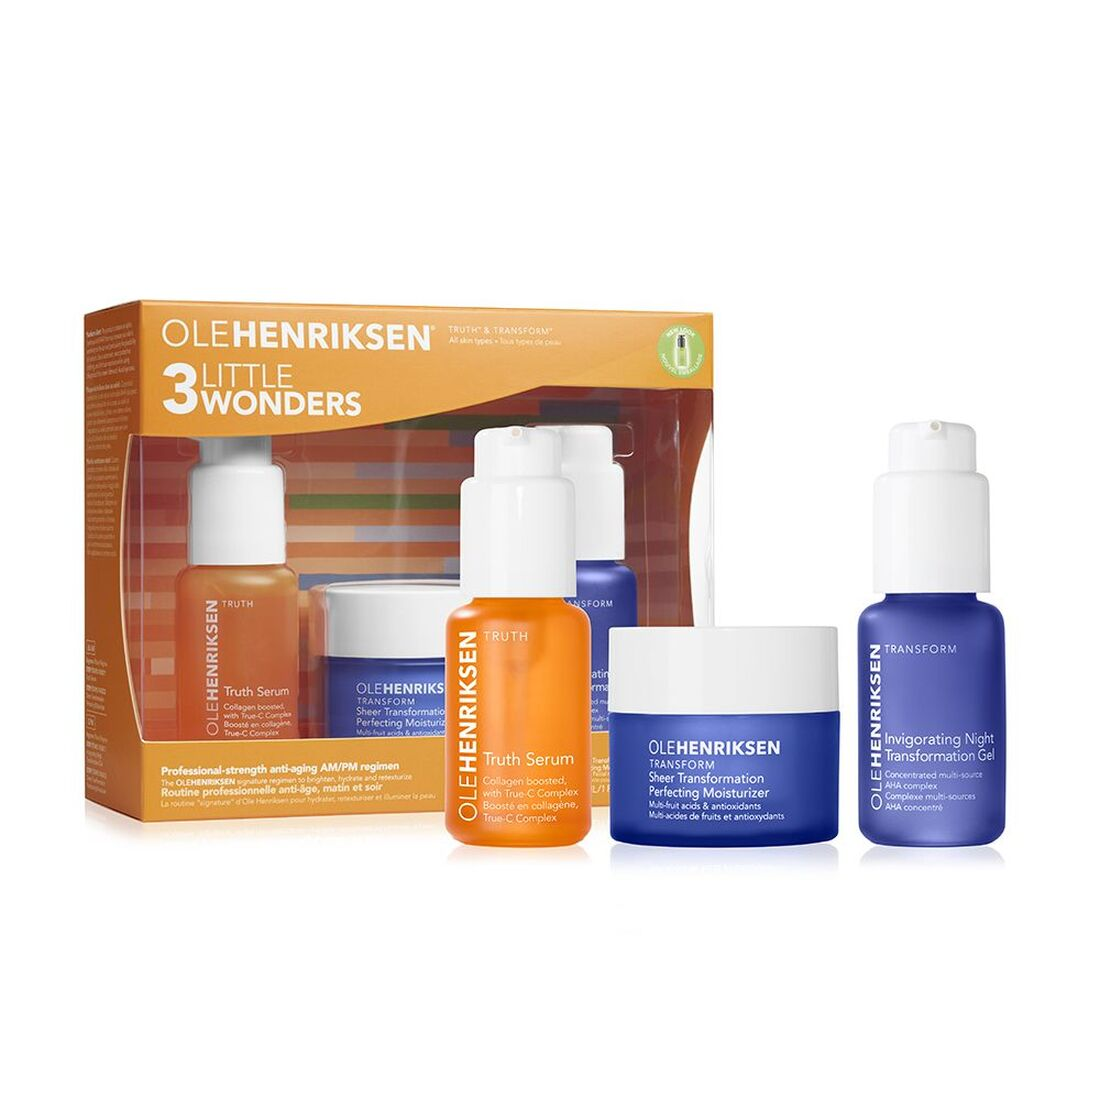 ole henriksen 3 little wonders face set